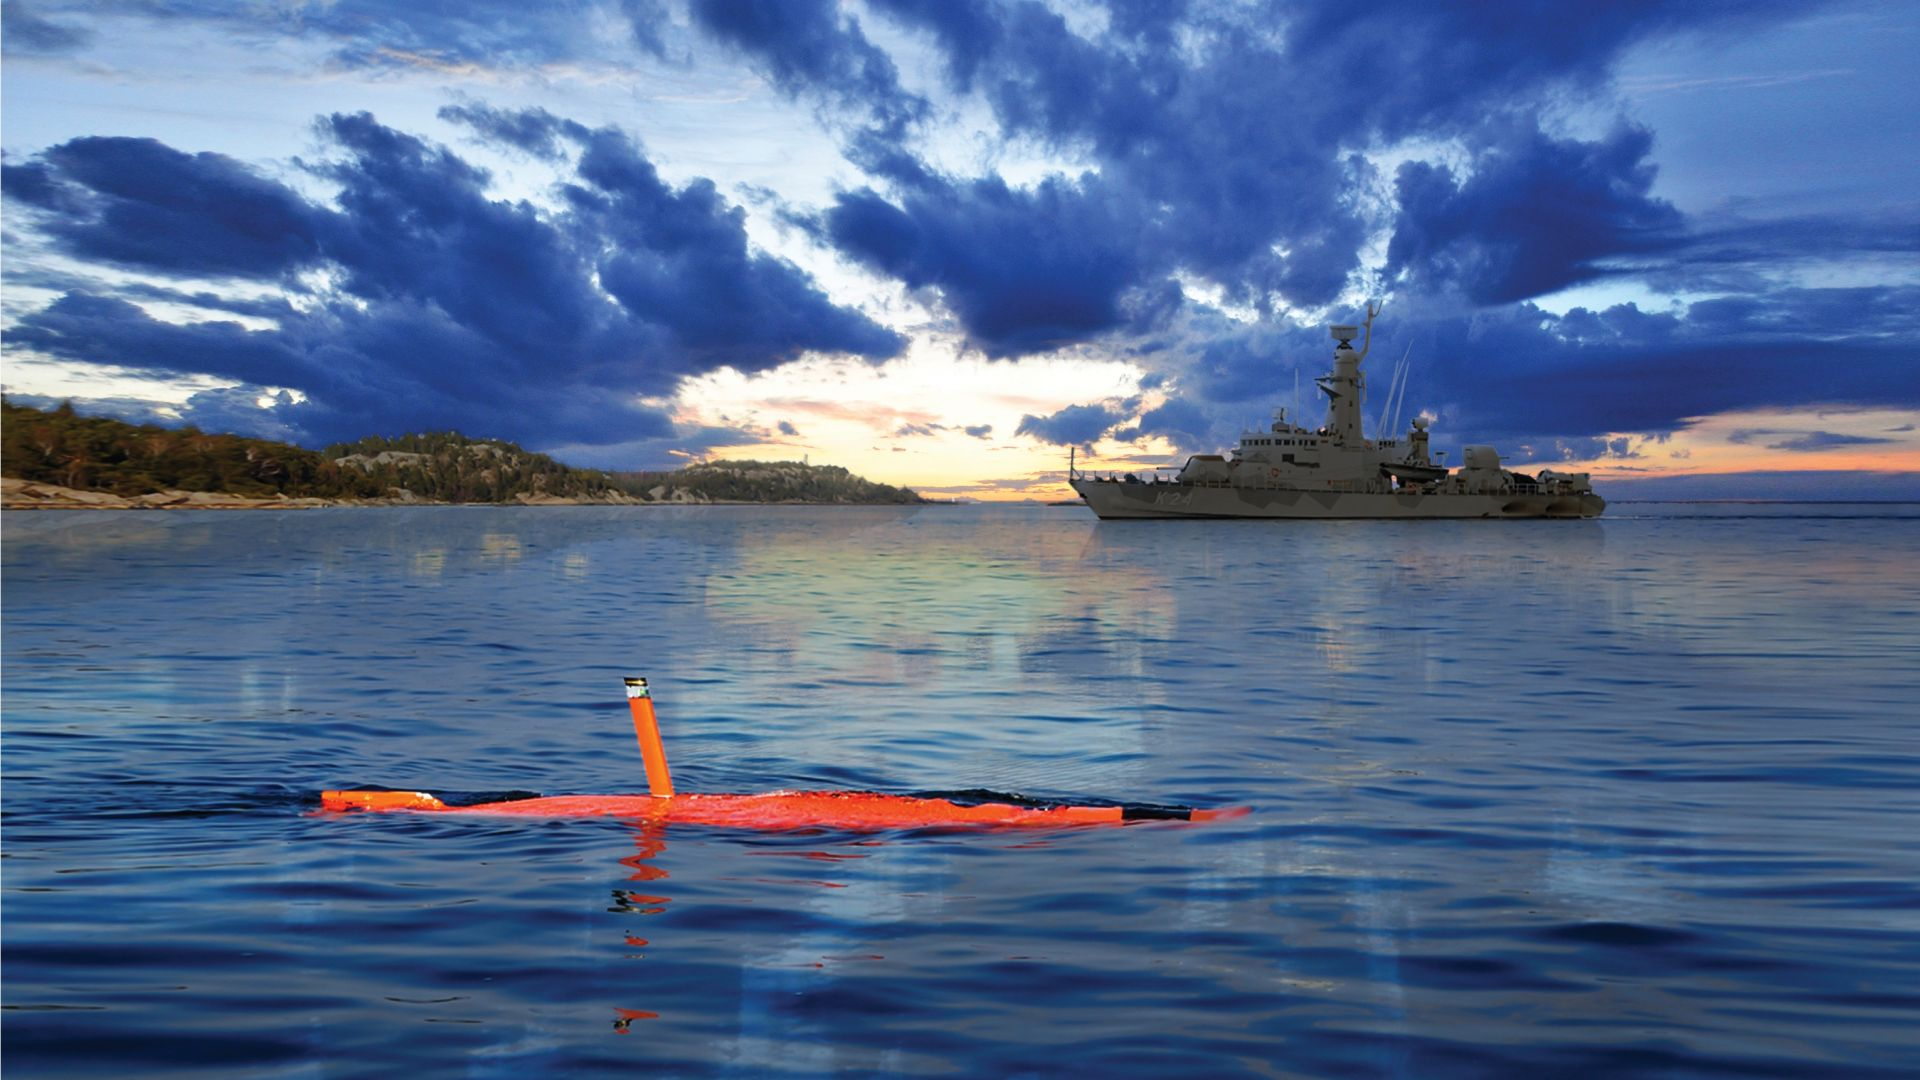 Saab AUV62-AT, drone, submarine, Unmanned Warrior 2016, Swedish Navy, Swedish Army (horizontal)